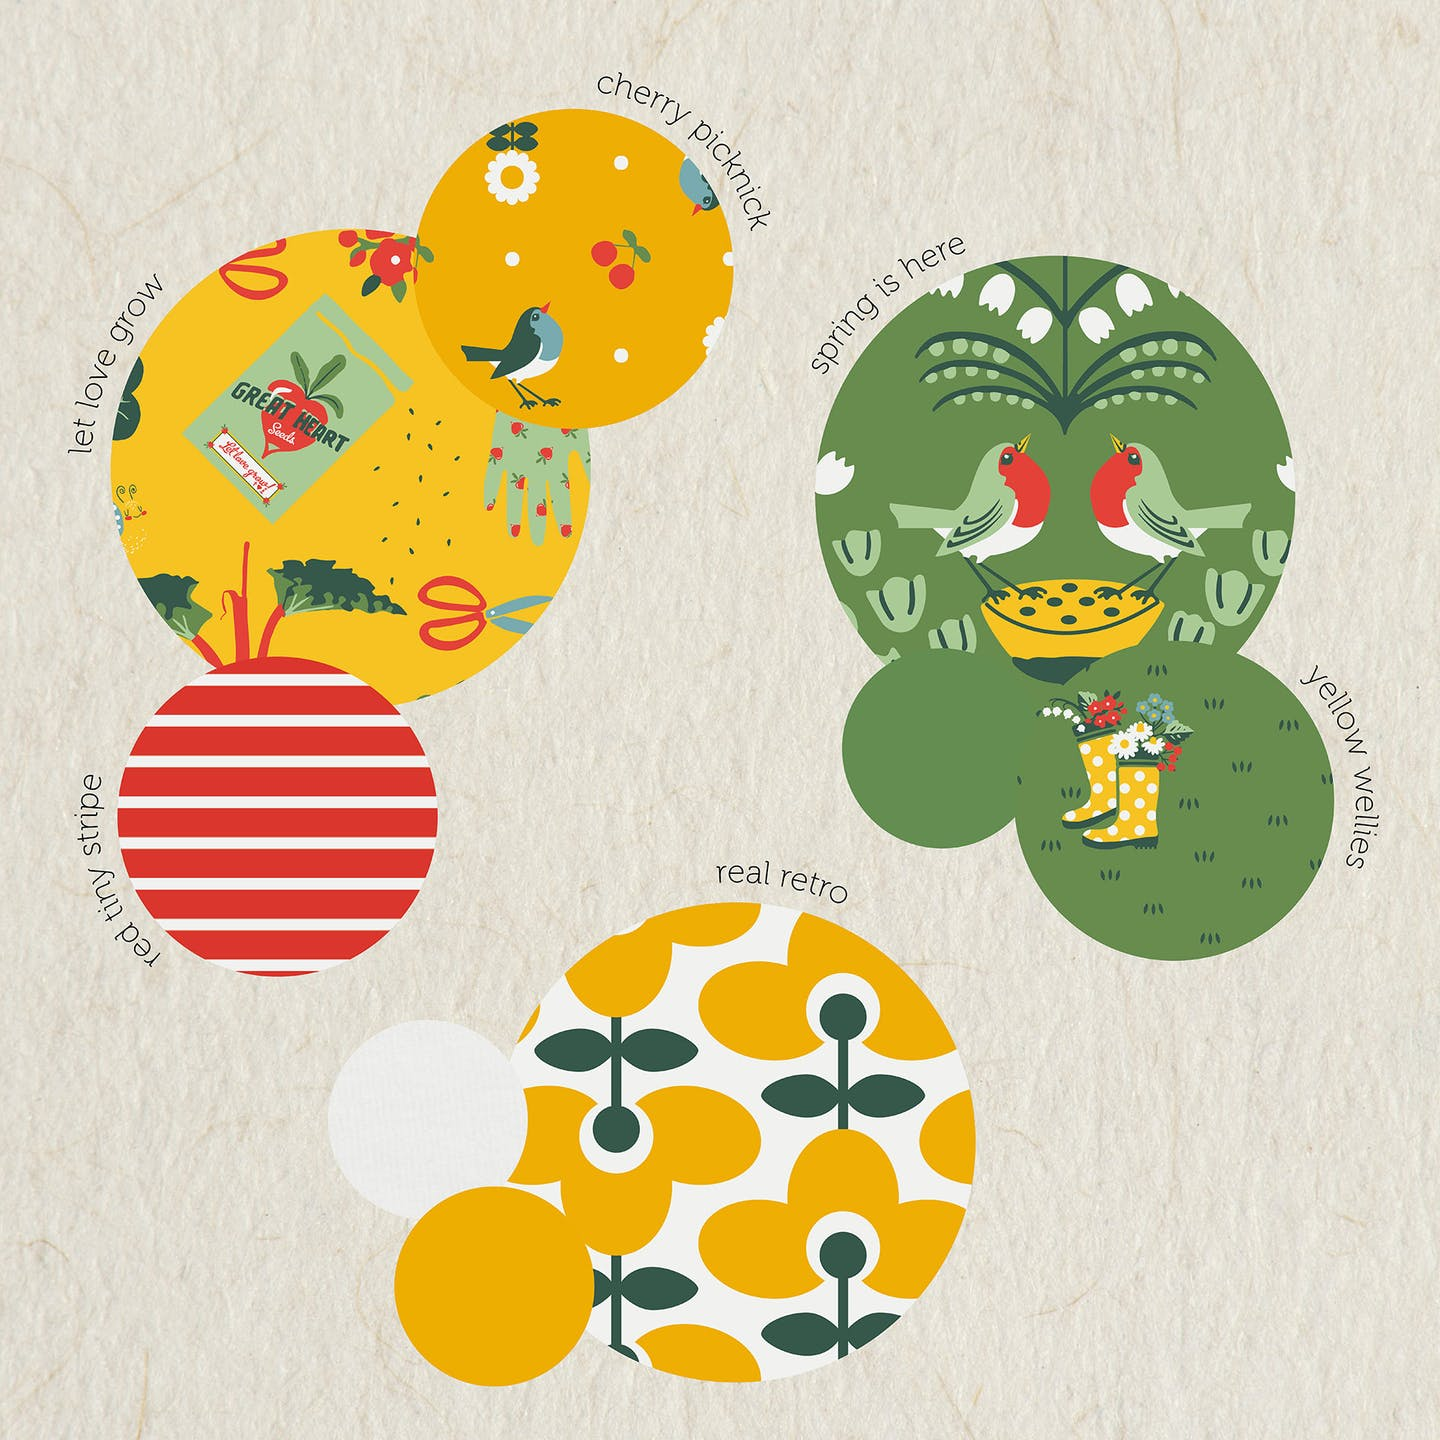 Die Stoffe red tiny stripe, let love grow, cherry picknick, spring is here, yellow wellies und real retro